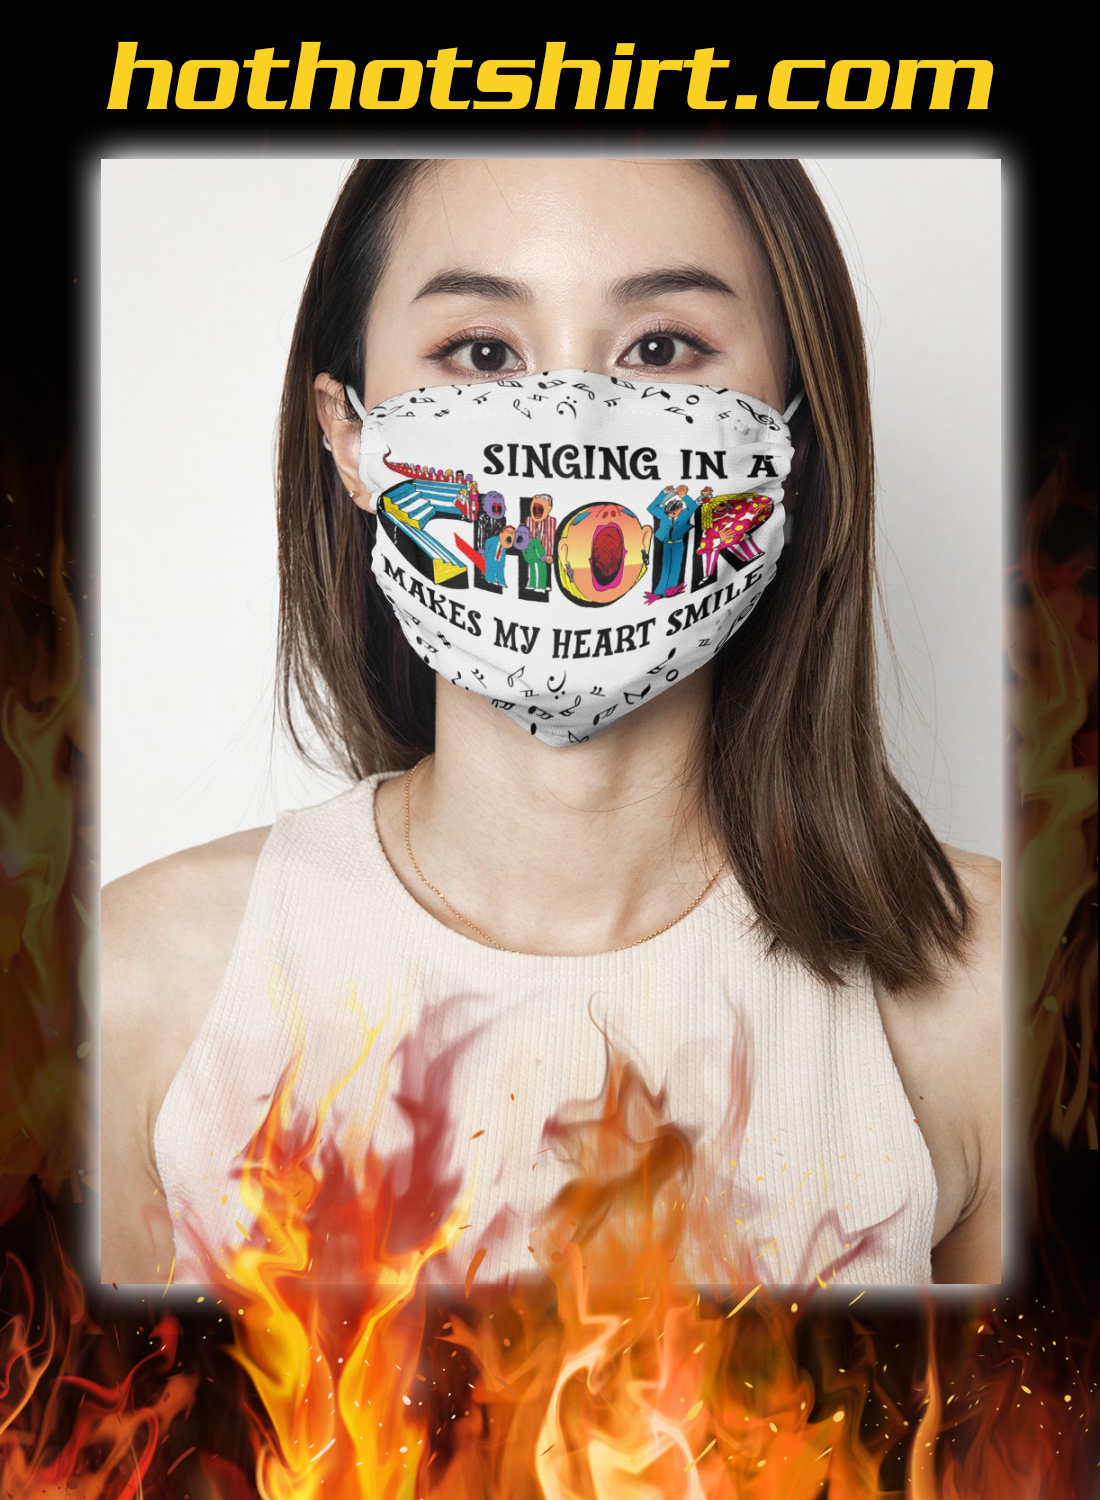 Singing in a choir makes my heart smile face mask 1